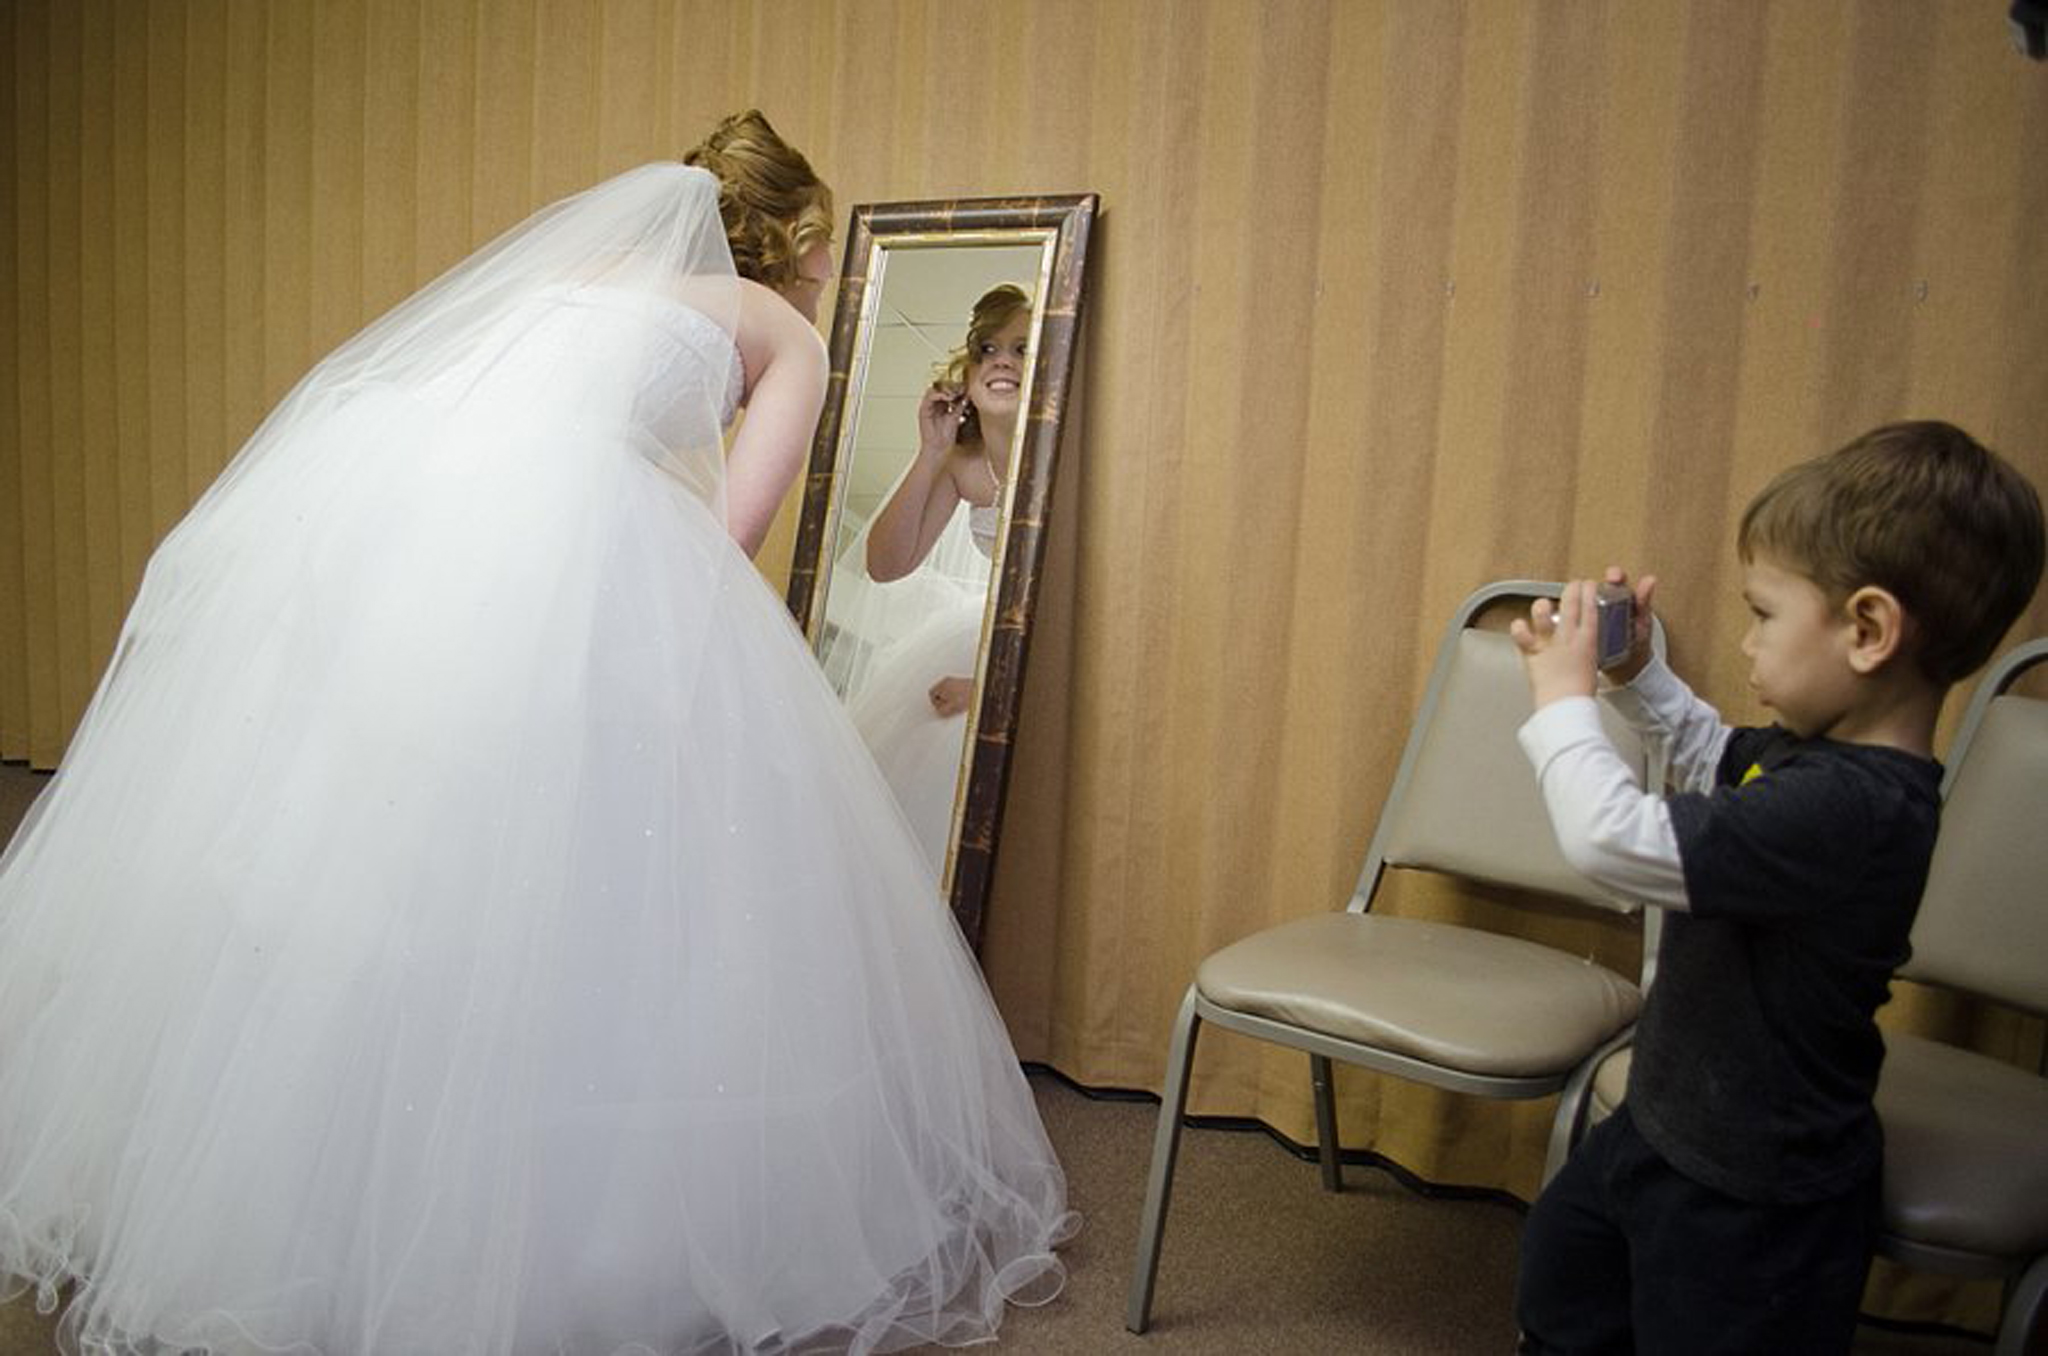 Cute Moment Wedding Photo by Johnson County Wedding Photographer Brittany Tarchala